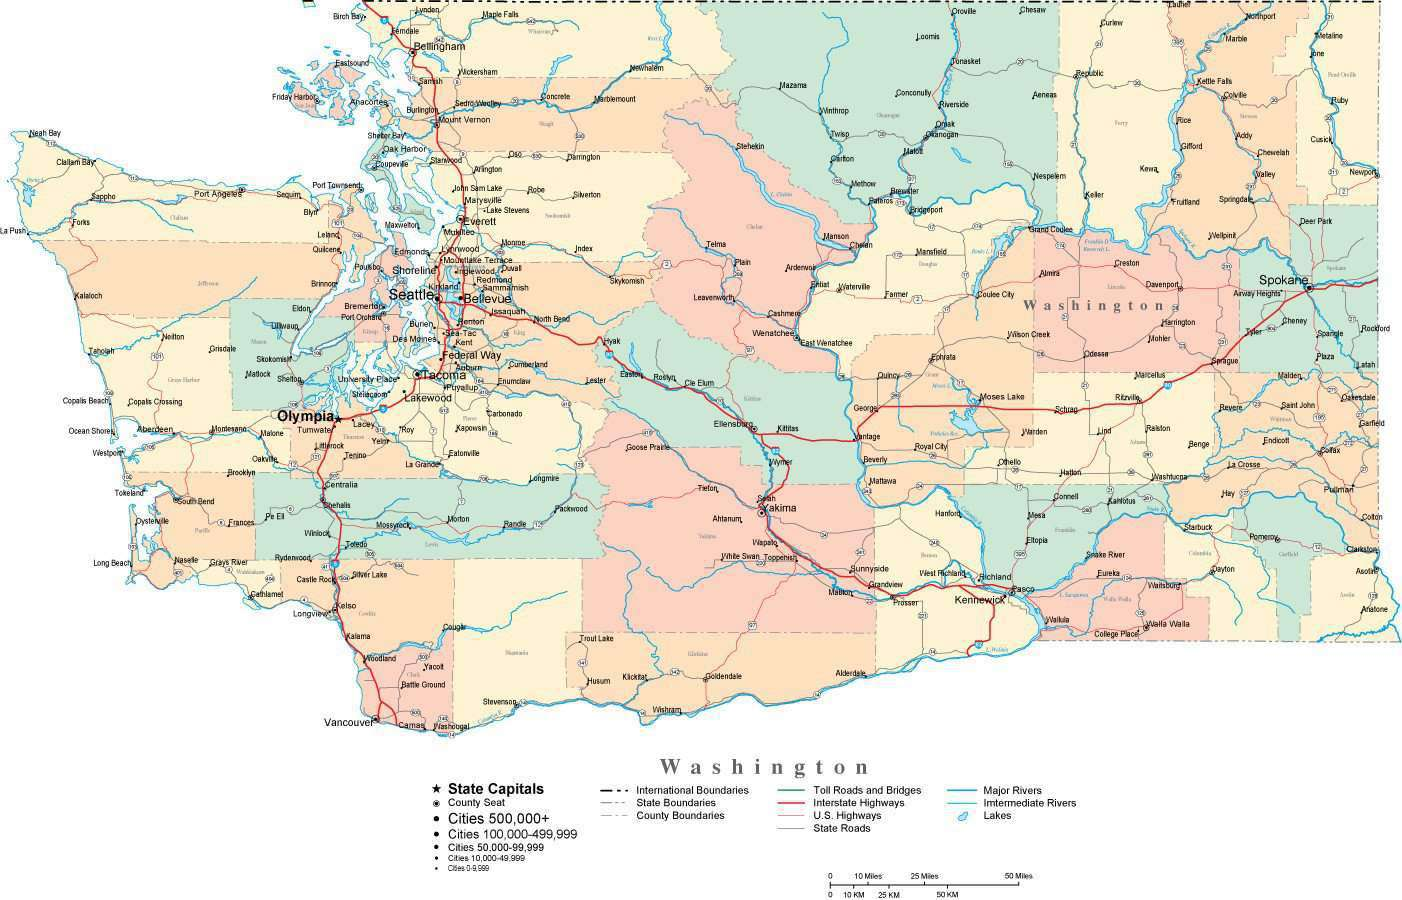 Picture of: Washington Digital Vector Map With Counties Major Cities Roads Rivers Lakes